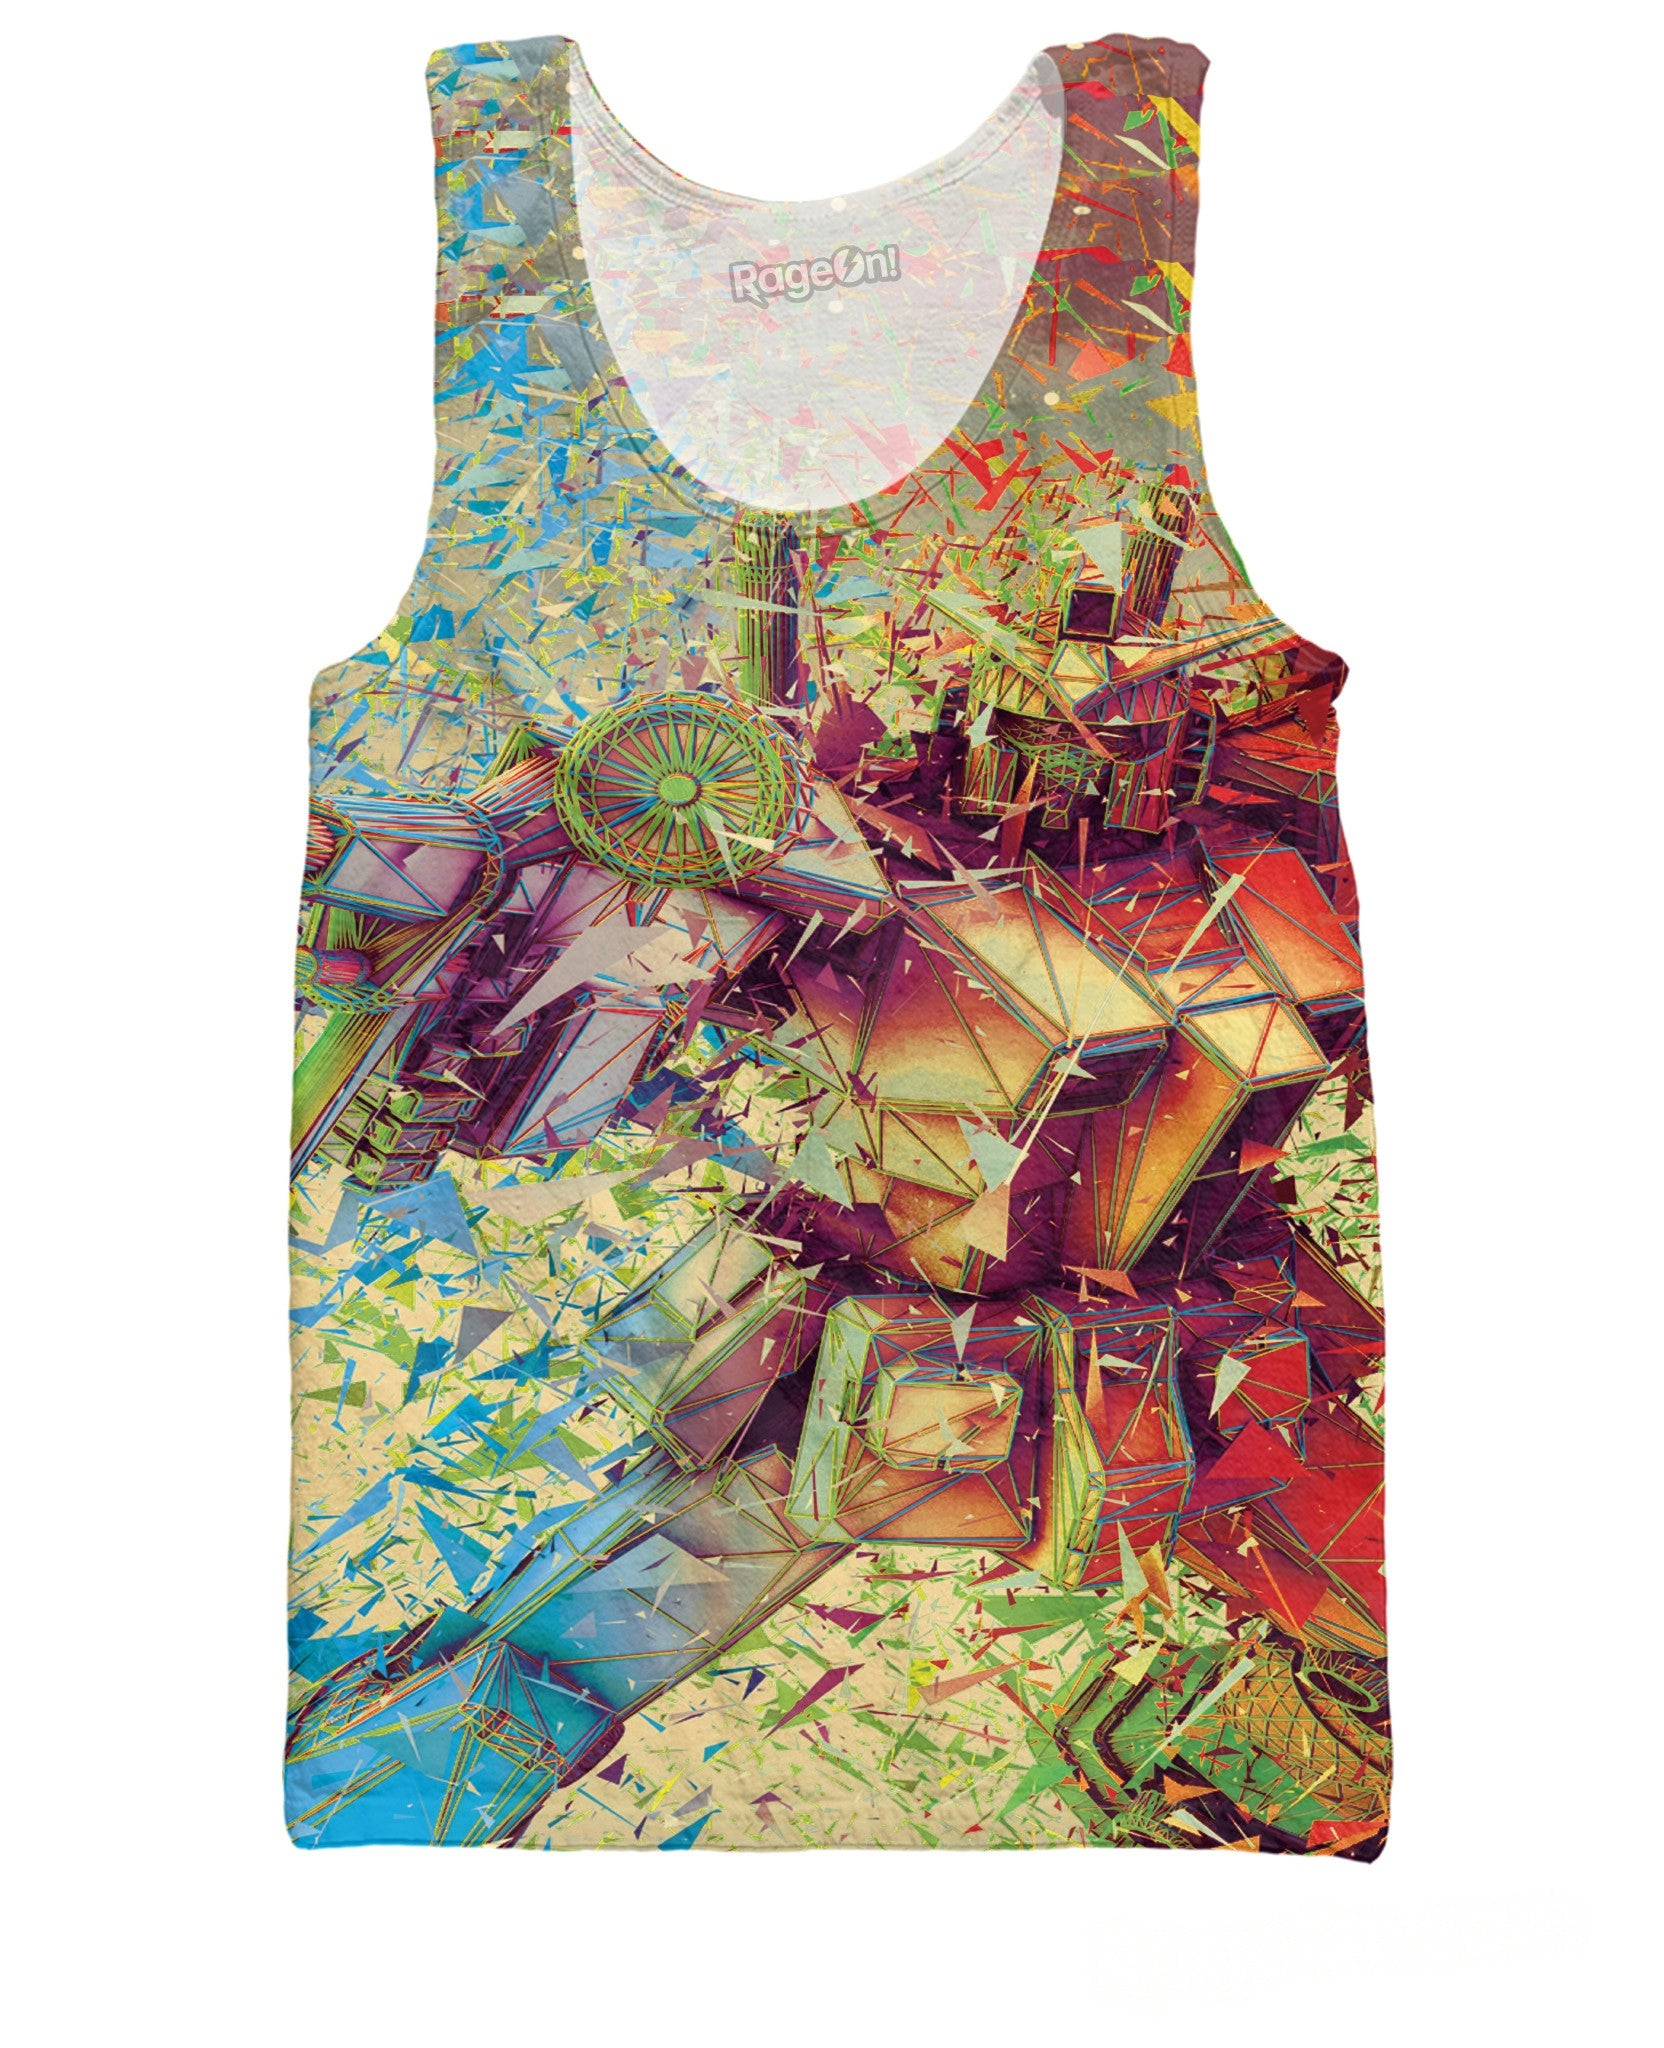 3D Transformers Limited Edition Red Tank Top - TShirtsRUS.co